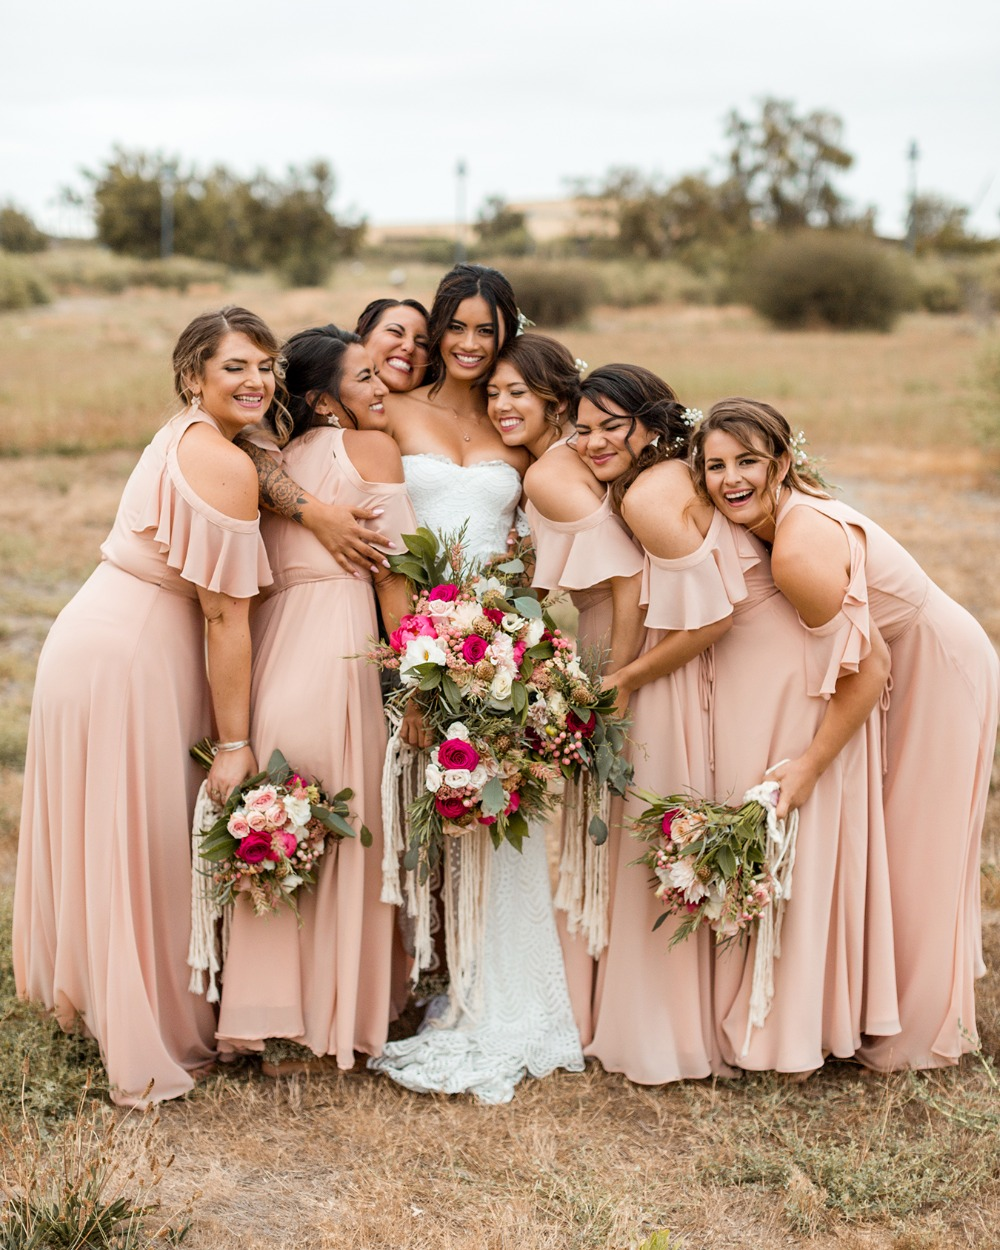 Bridesmaid dresses from Lulus